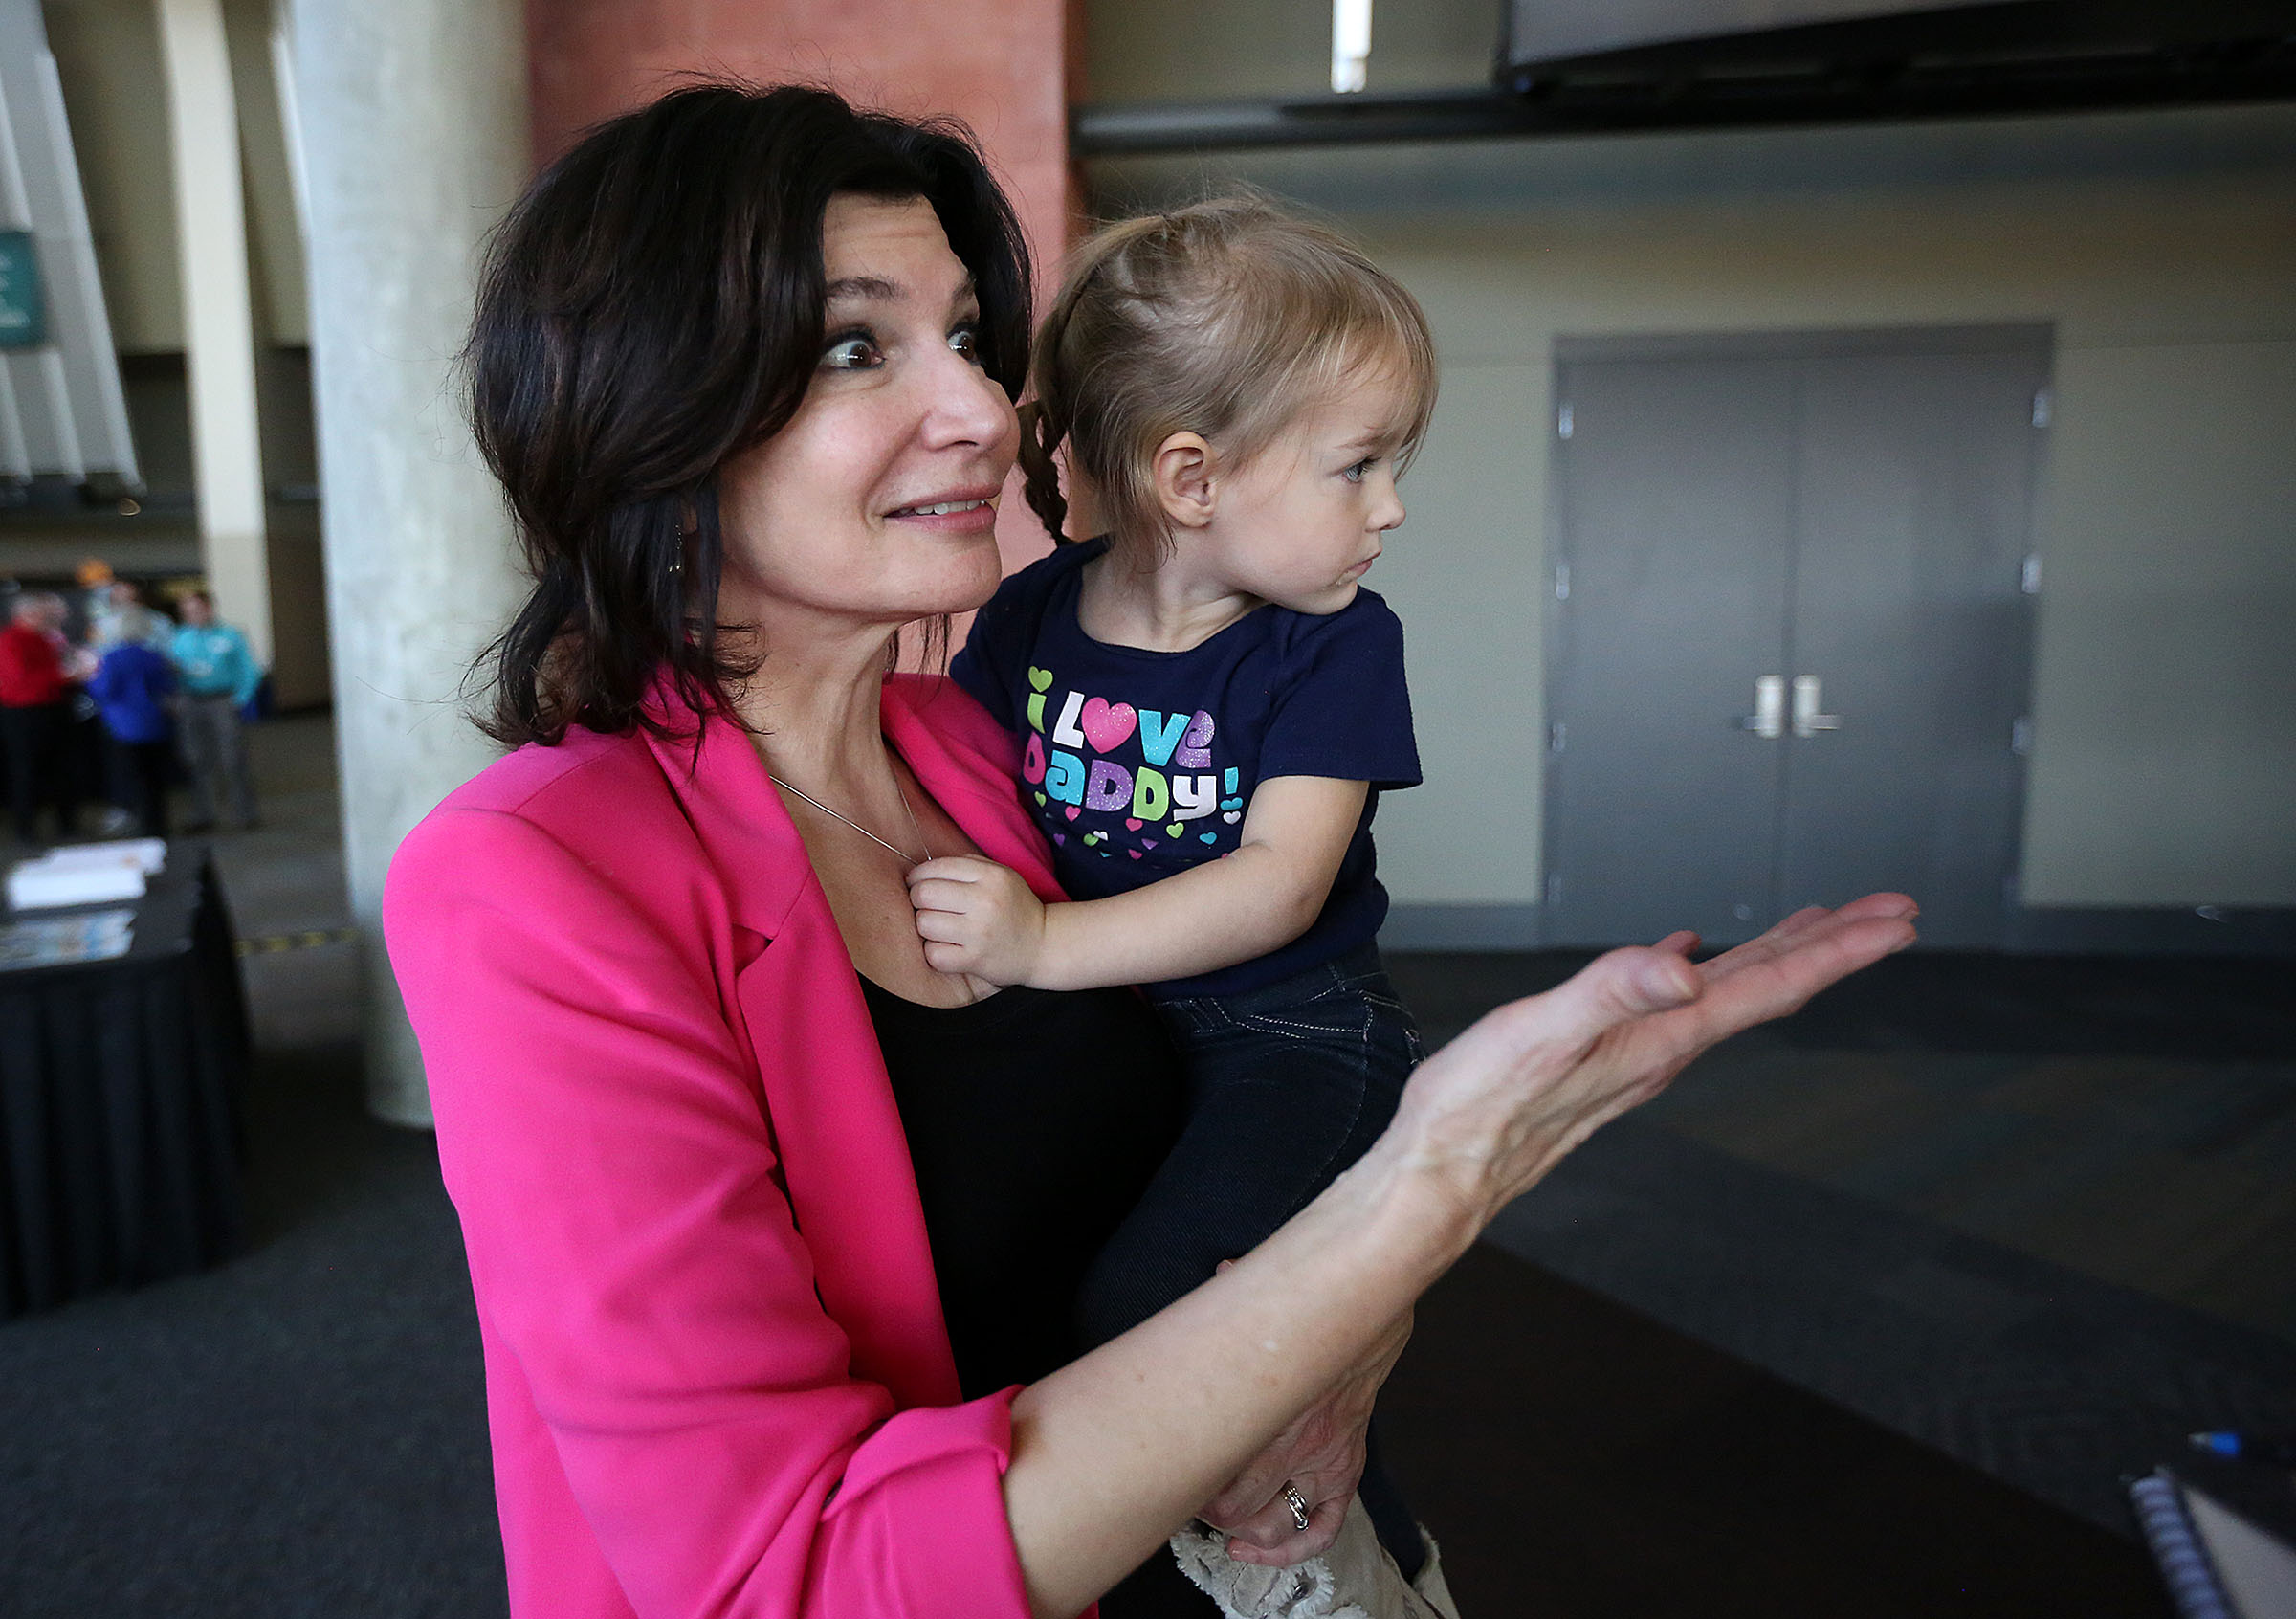 Lily Eskelsen Garcia, president of the National Education Association, holds her granddaughter, Lily Jo Eskelsen, at the annual Utah Education Association convention in Sandy in 2017. Eskelsen Garcia is considered a contender for education secretary in the administration of President-elect Joe Biden, according to Politico.